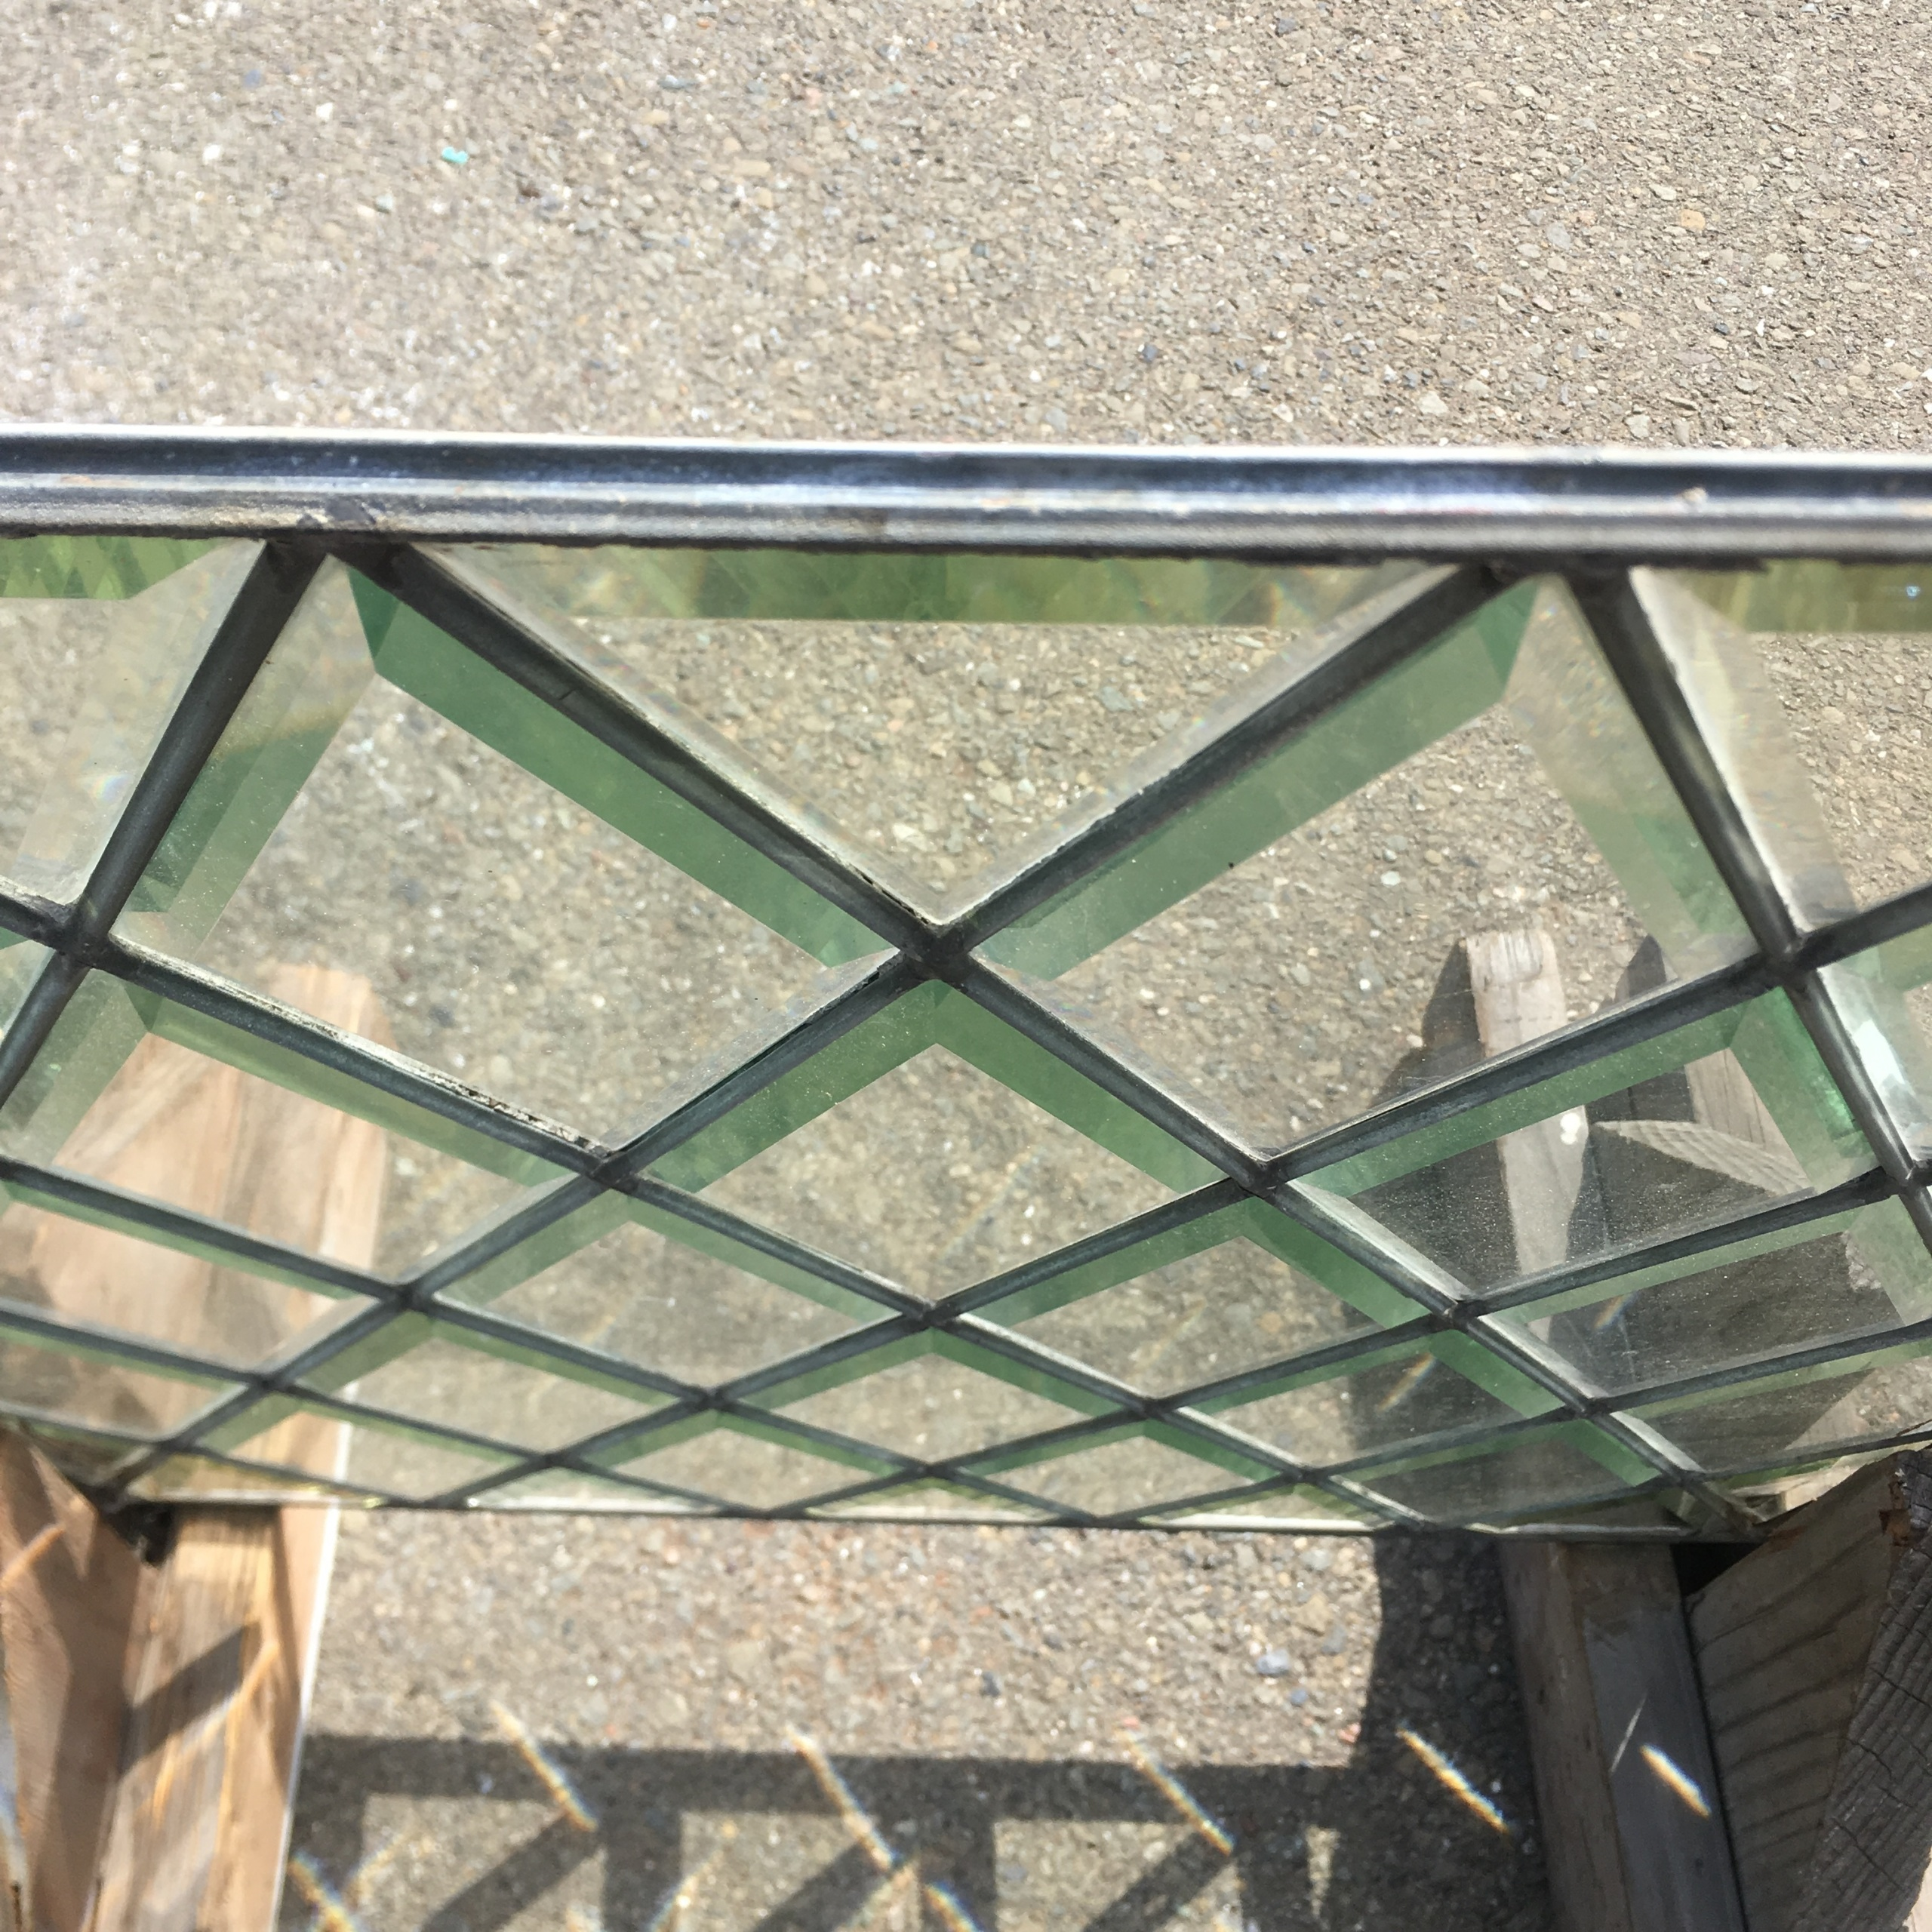 Beveled Diamond Pane Leaded Glass Window